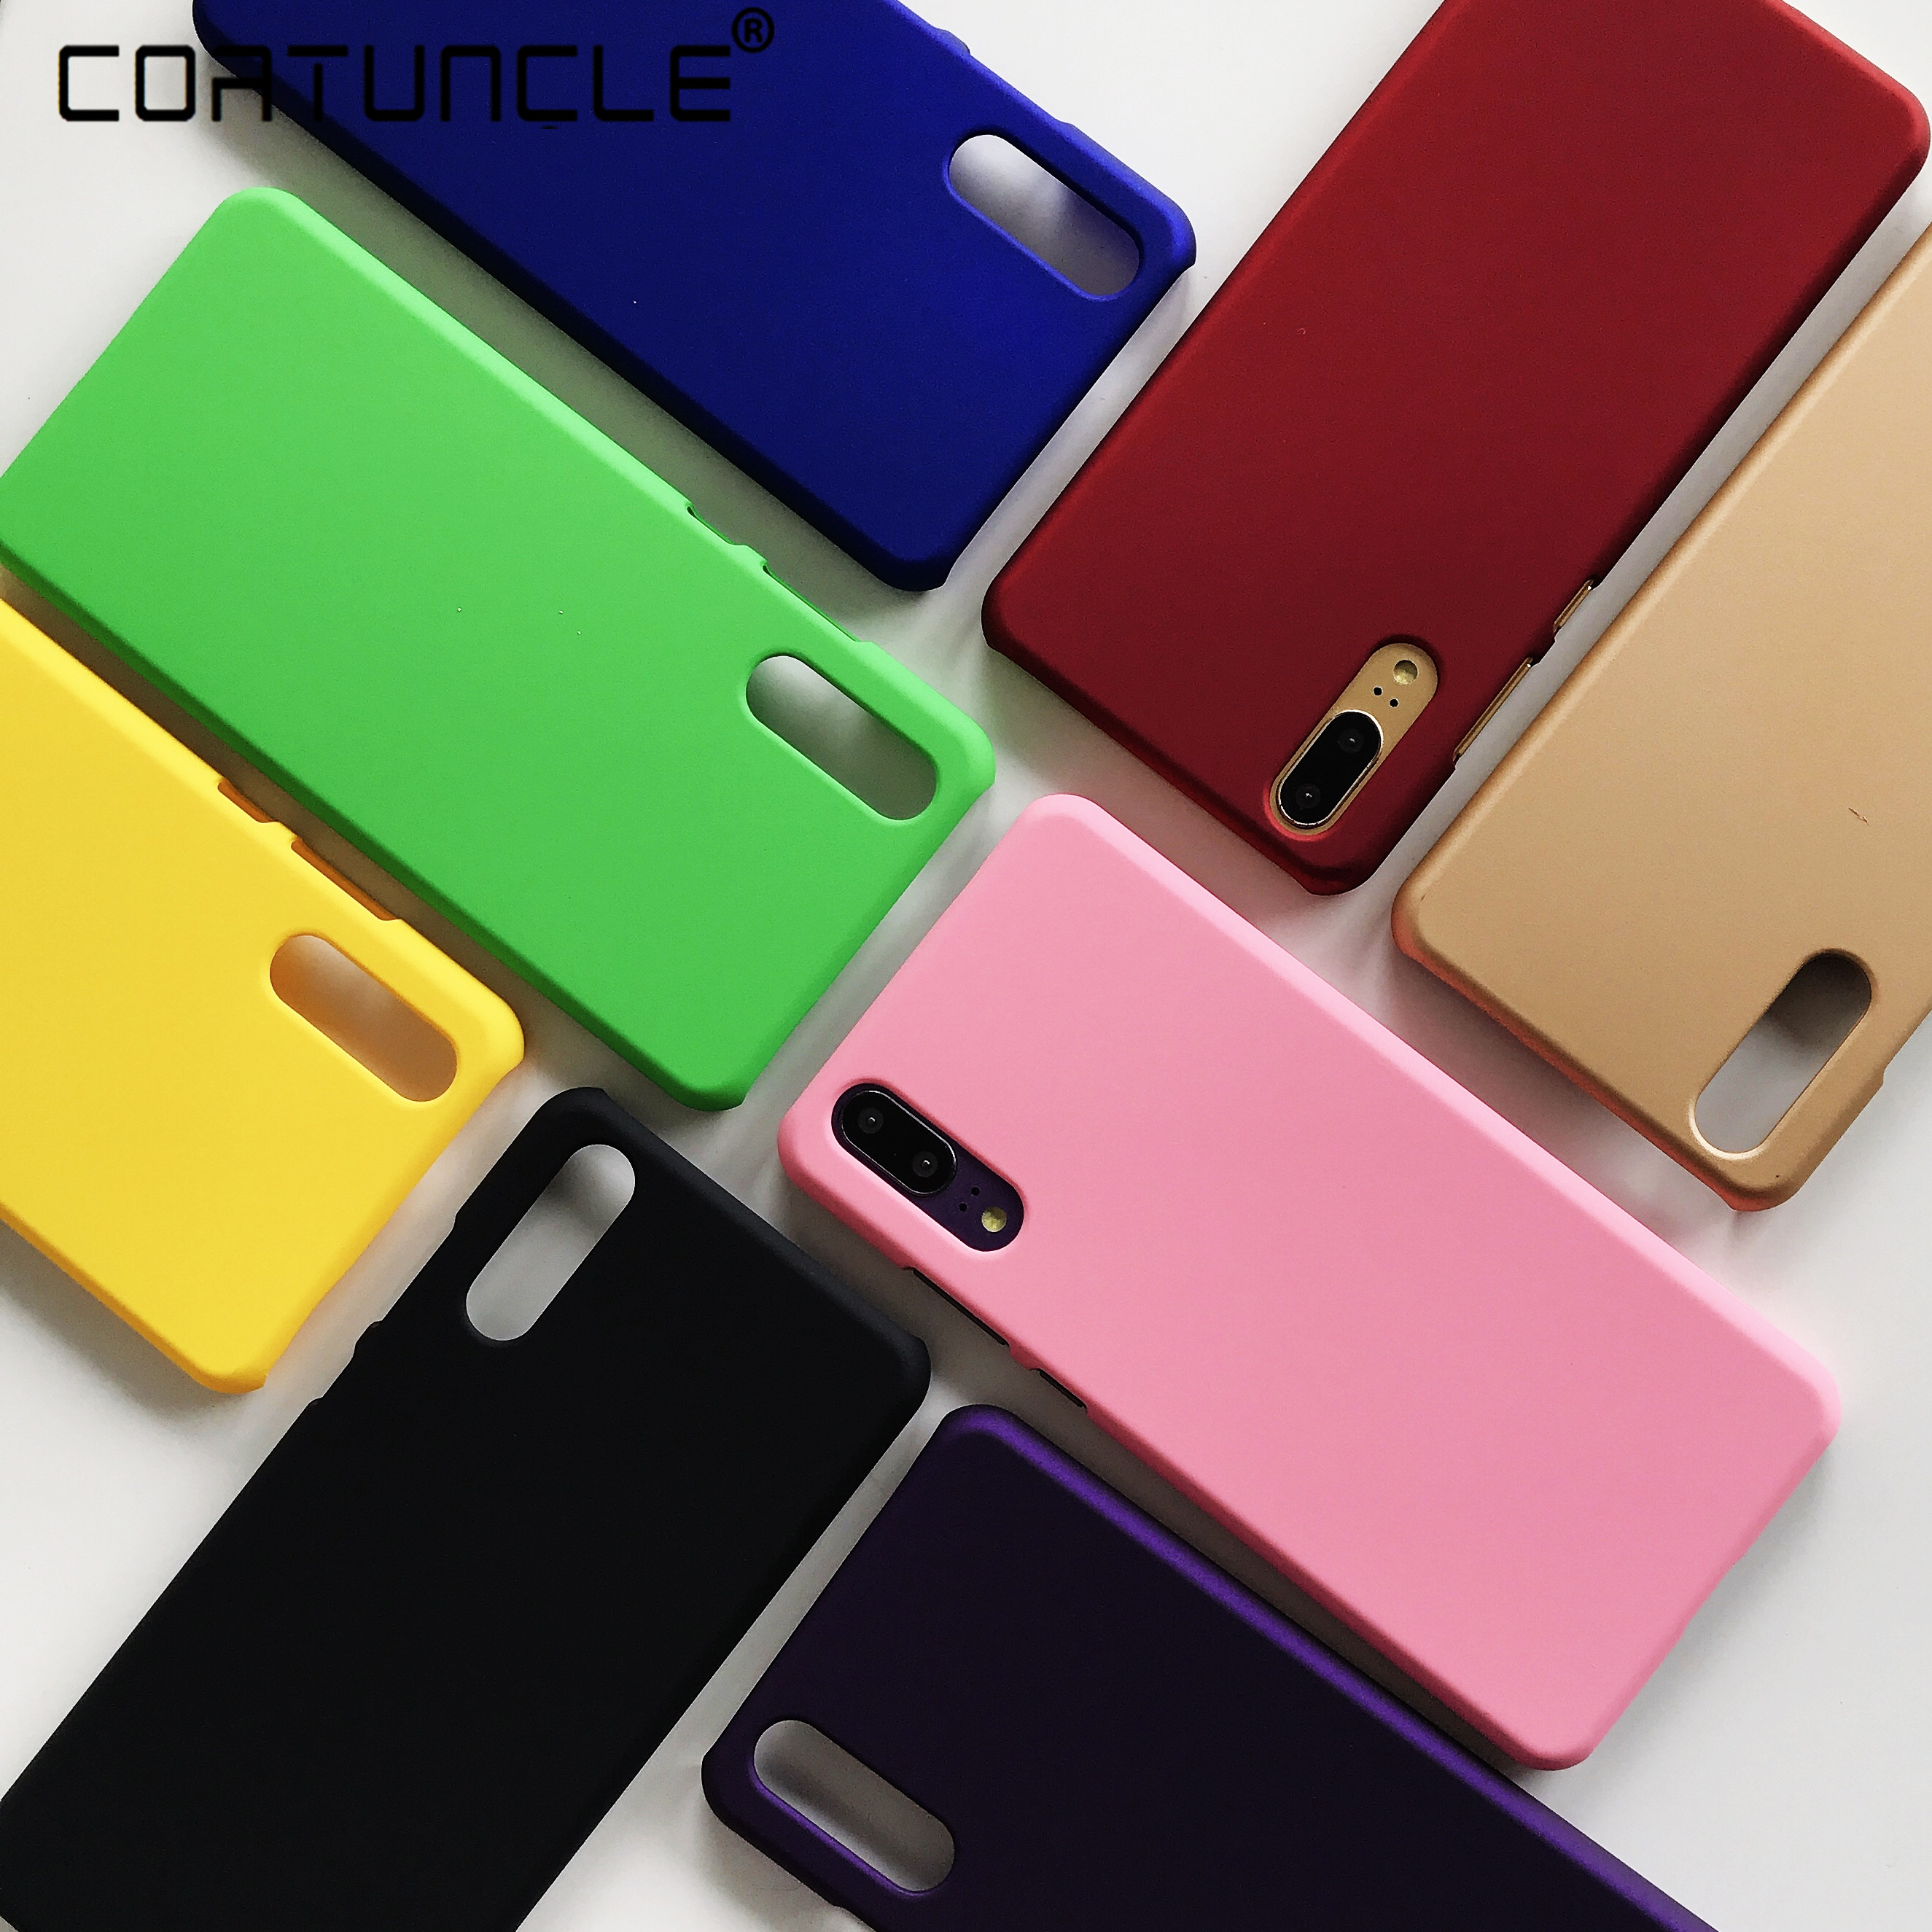 <font><b>Y6</b></font> <font><b>2019</b></font> Phone Case For <font><b>Fundas</b></font> <font><b>Huawei</b></font> <font><b>Y6</b></font> <font><b>2019</b></font> Case Hard plastic PC Matte Back Cover For Coque <font><b>Huawei</b></font> Honor 8A JAT-L41 Case Cover image